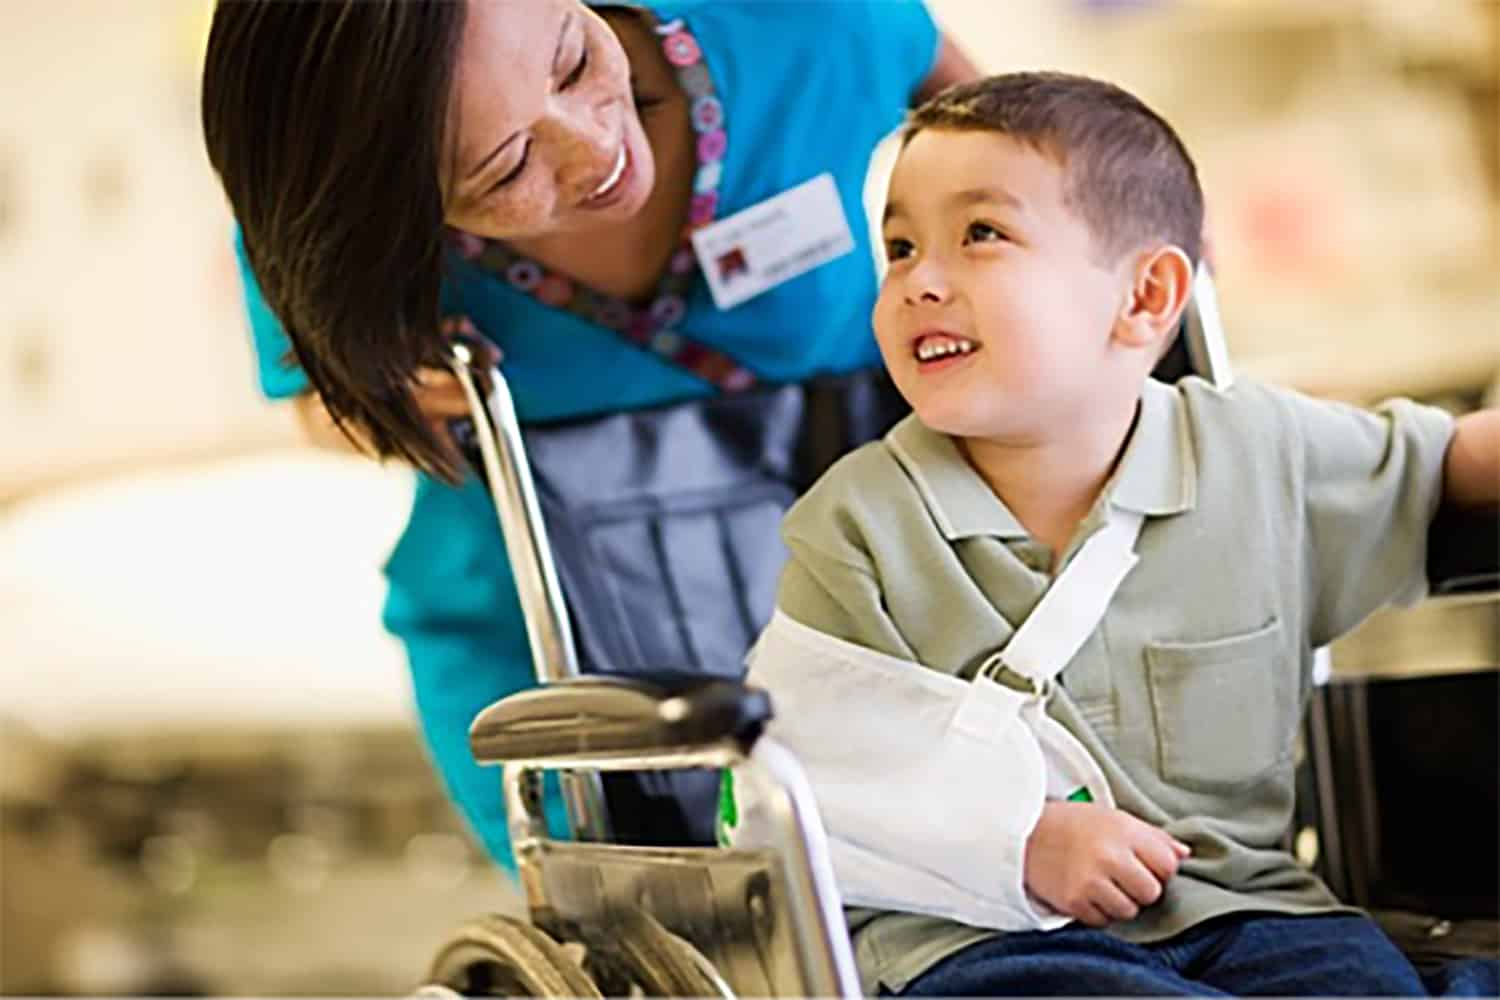 Orthopedic Services Kid in Wheelchair with Broken Arm